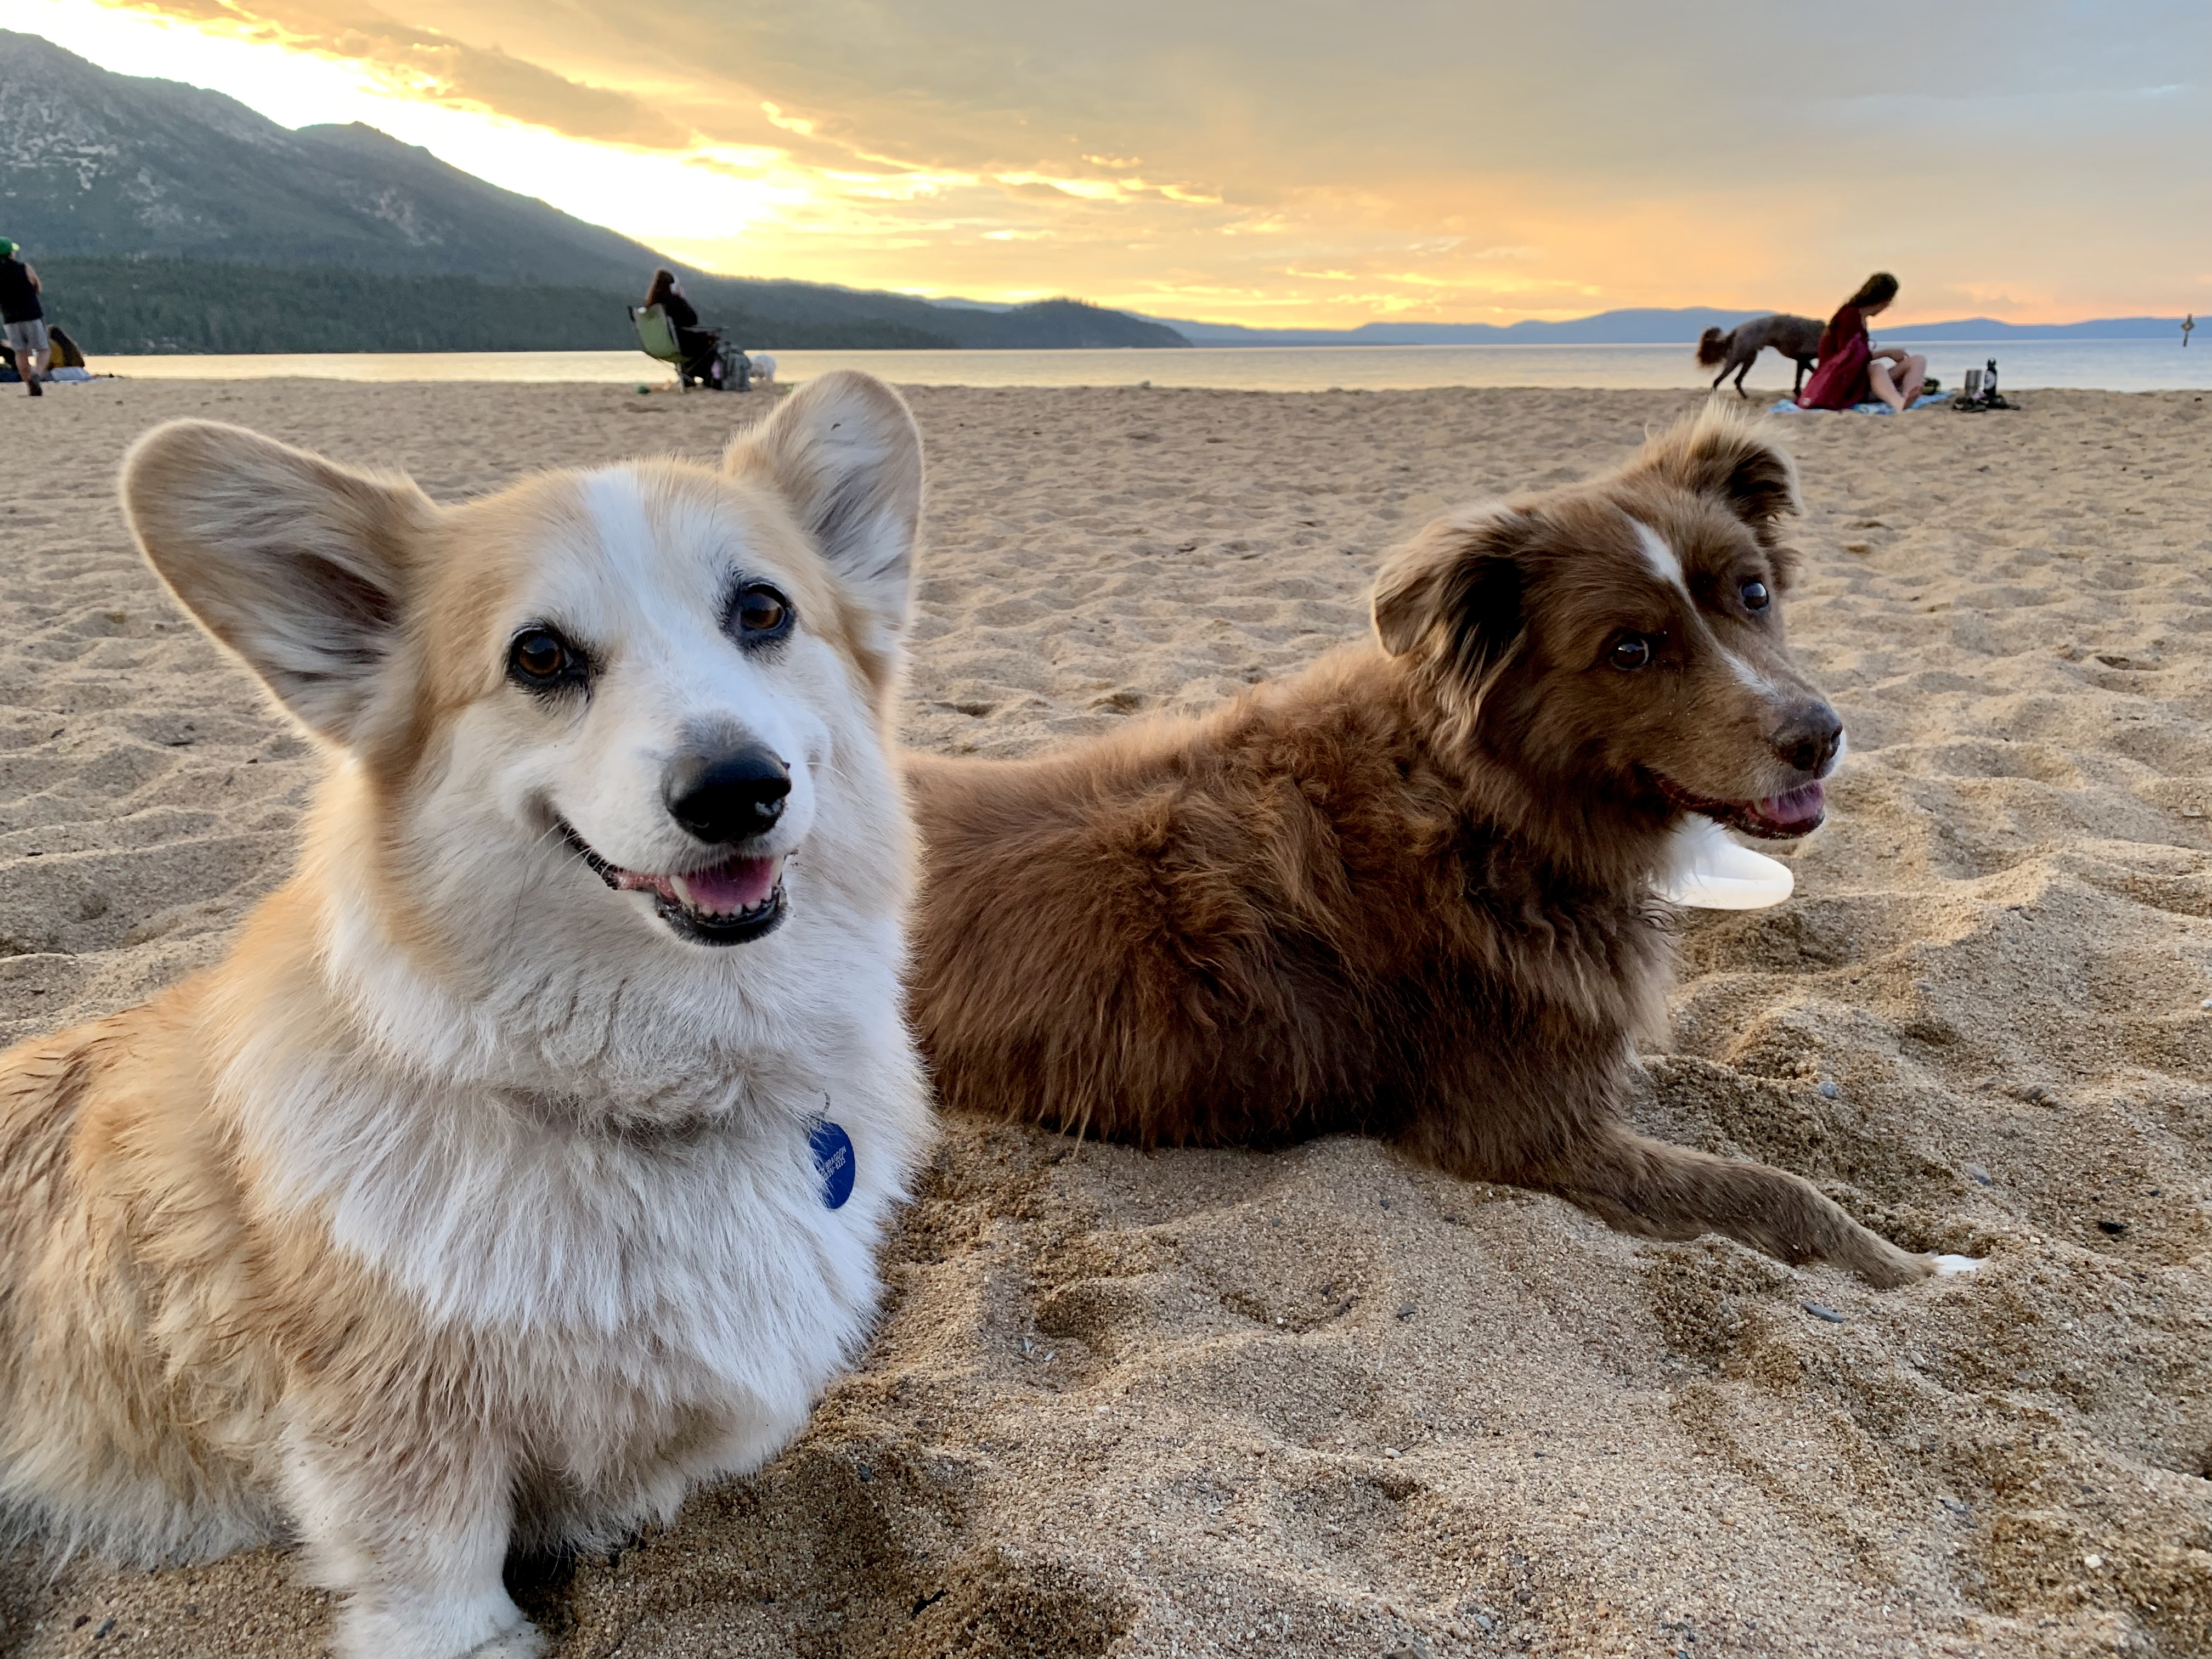 Bring the pup for sunset at dog-friendly Nevada Beach